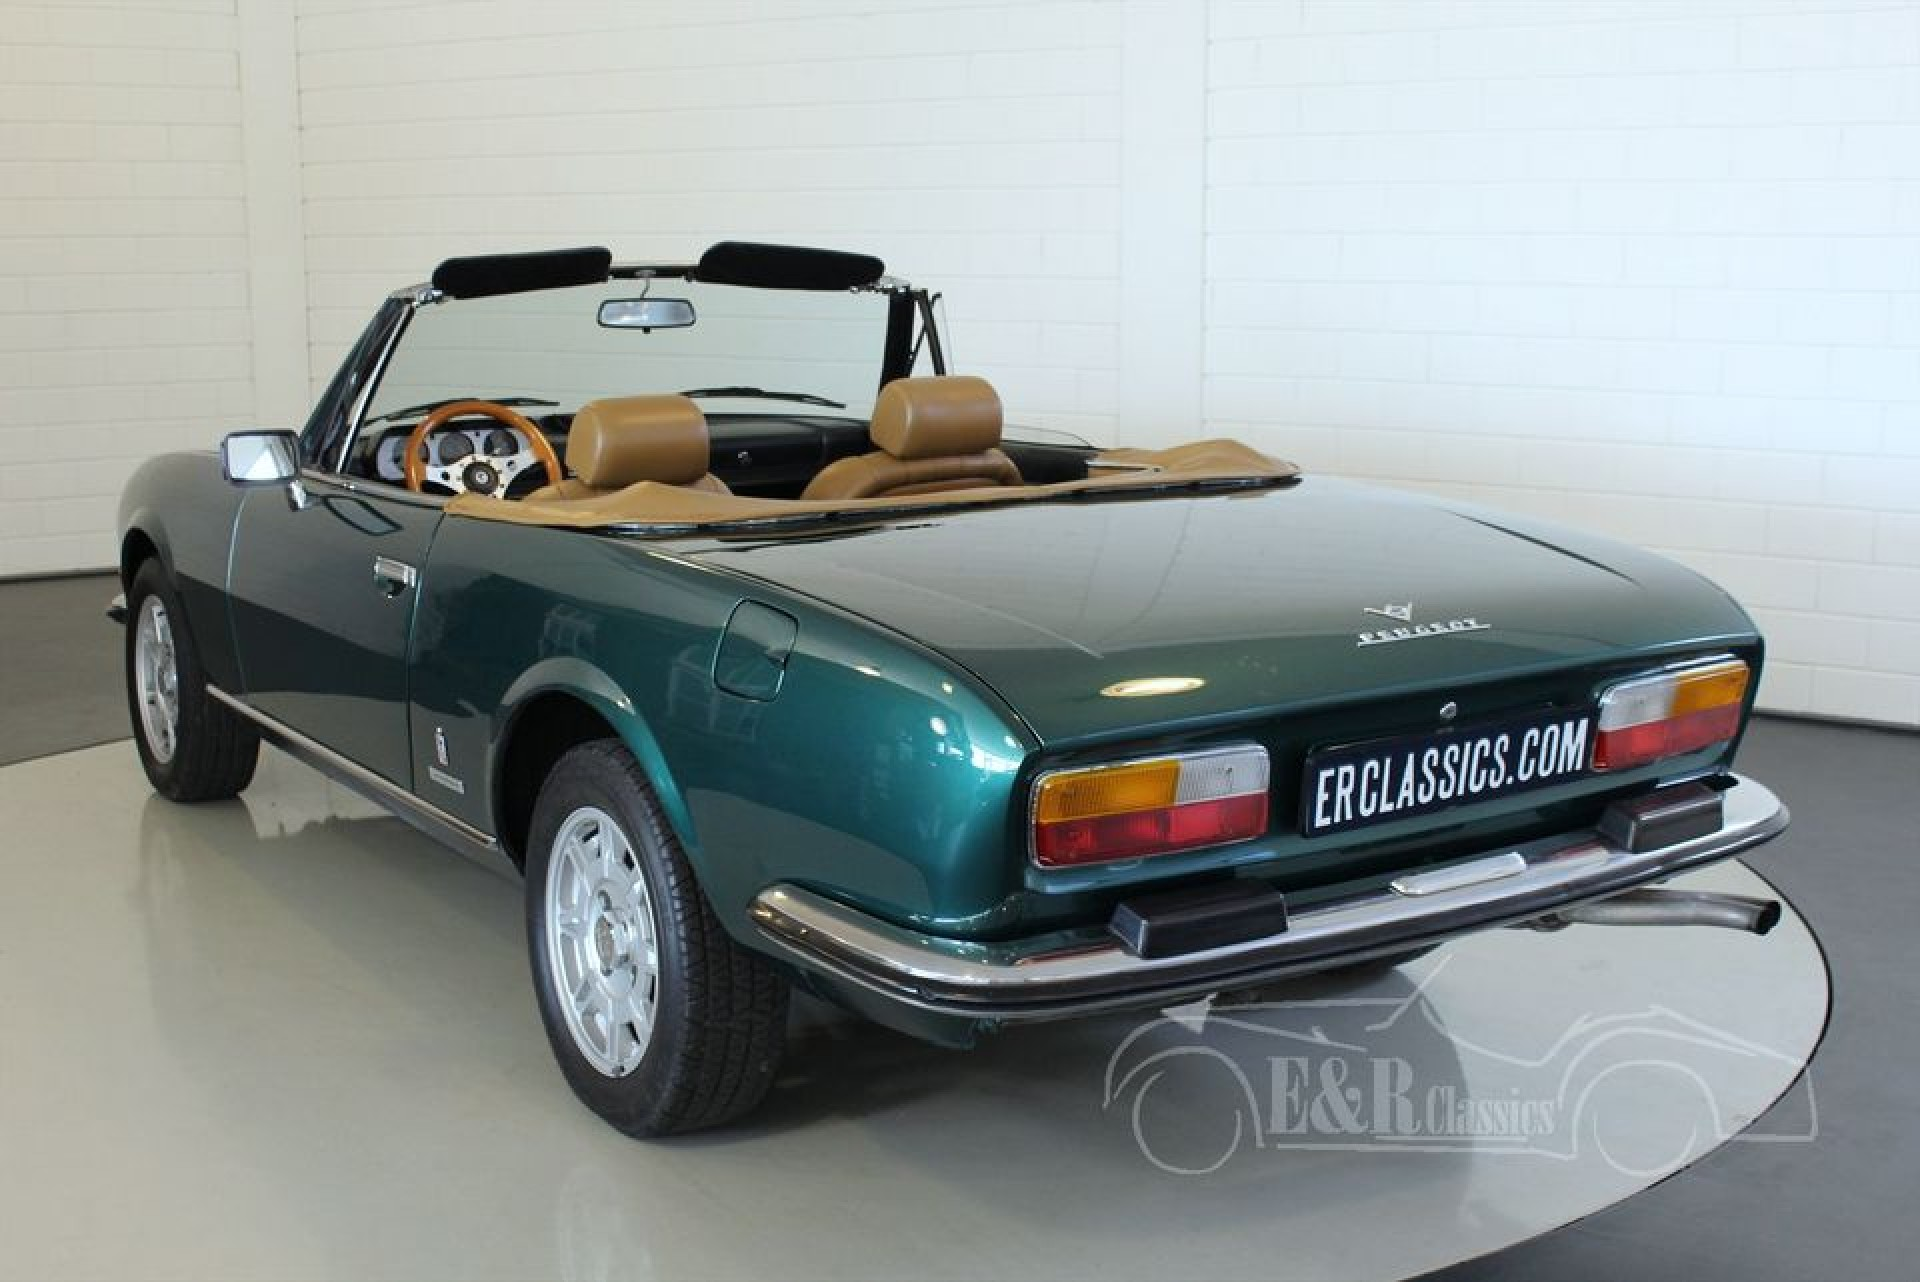 Peugeot 504 Cabriolet 1976 For Sale At Erclassics HD Wallpapers Download free images and photos [musssic.tk]